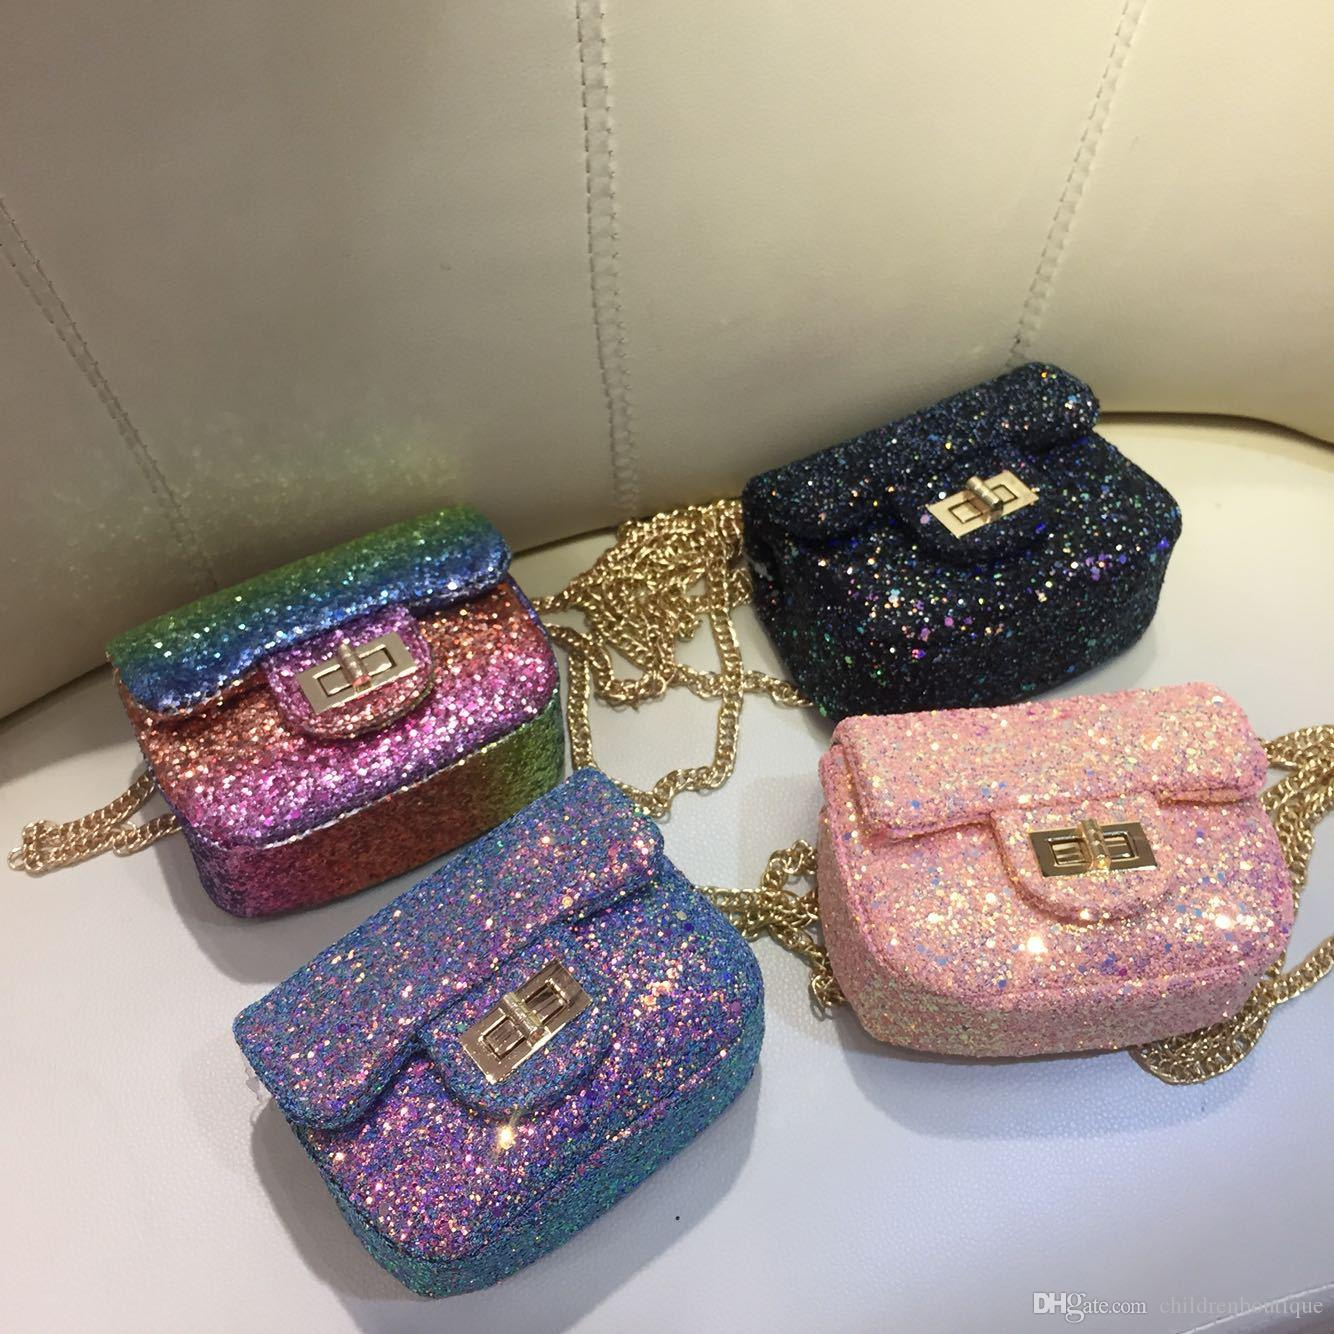 New Korea Style Purses Fashion Handbag Kids Children Princess Party Crossbody  Bag With Sequin PU Leather Metal Chain For Baby Girls Hand Bags For Teens  ... 4a72e3ea2aedd